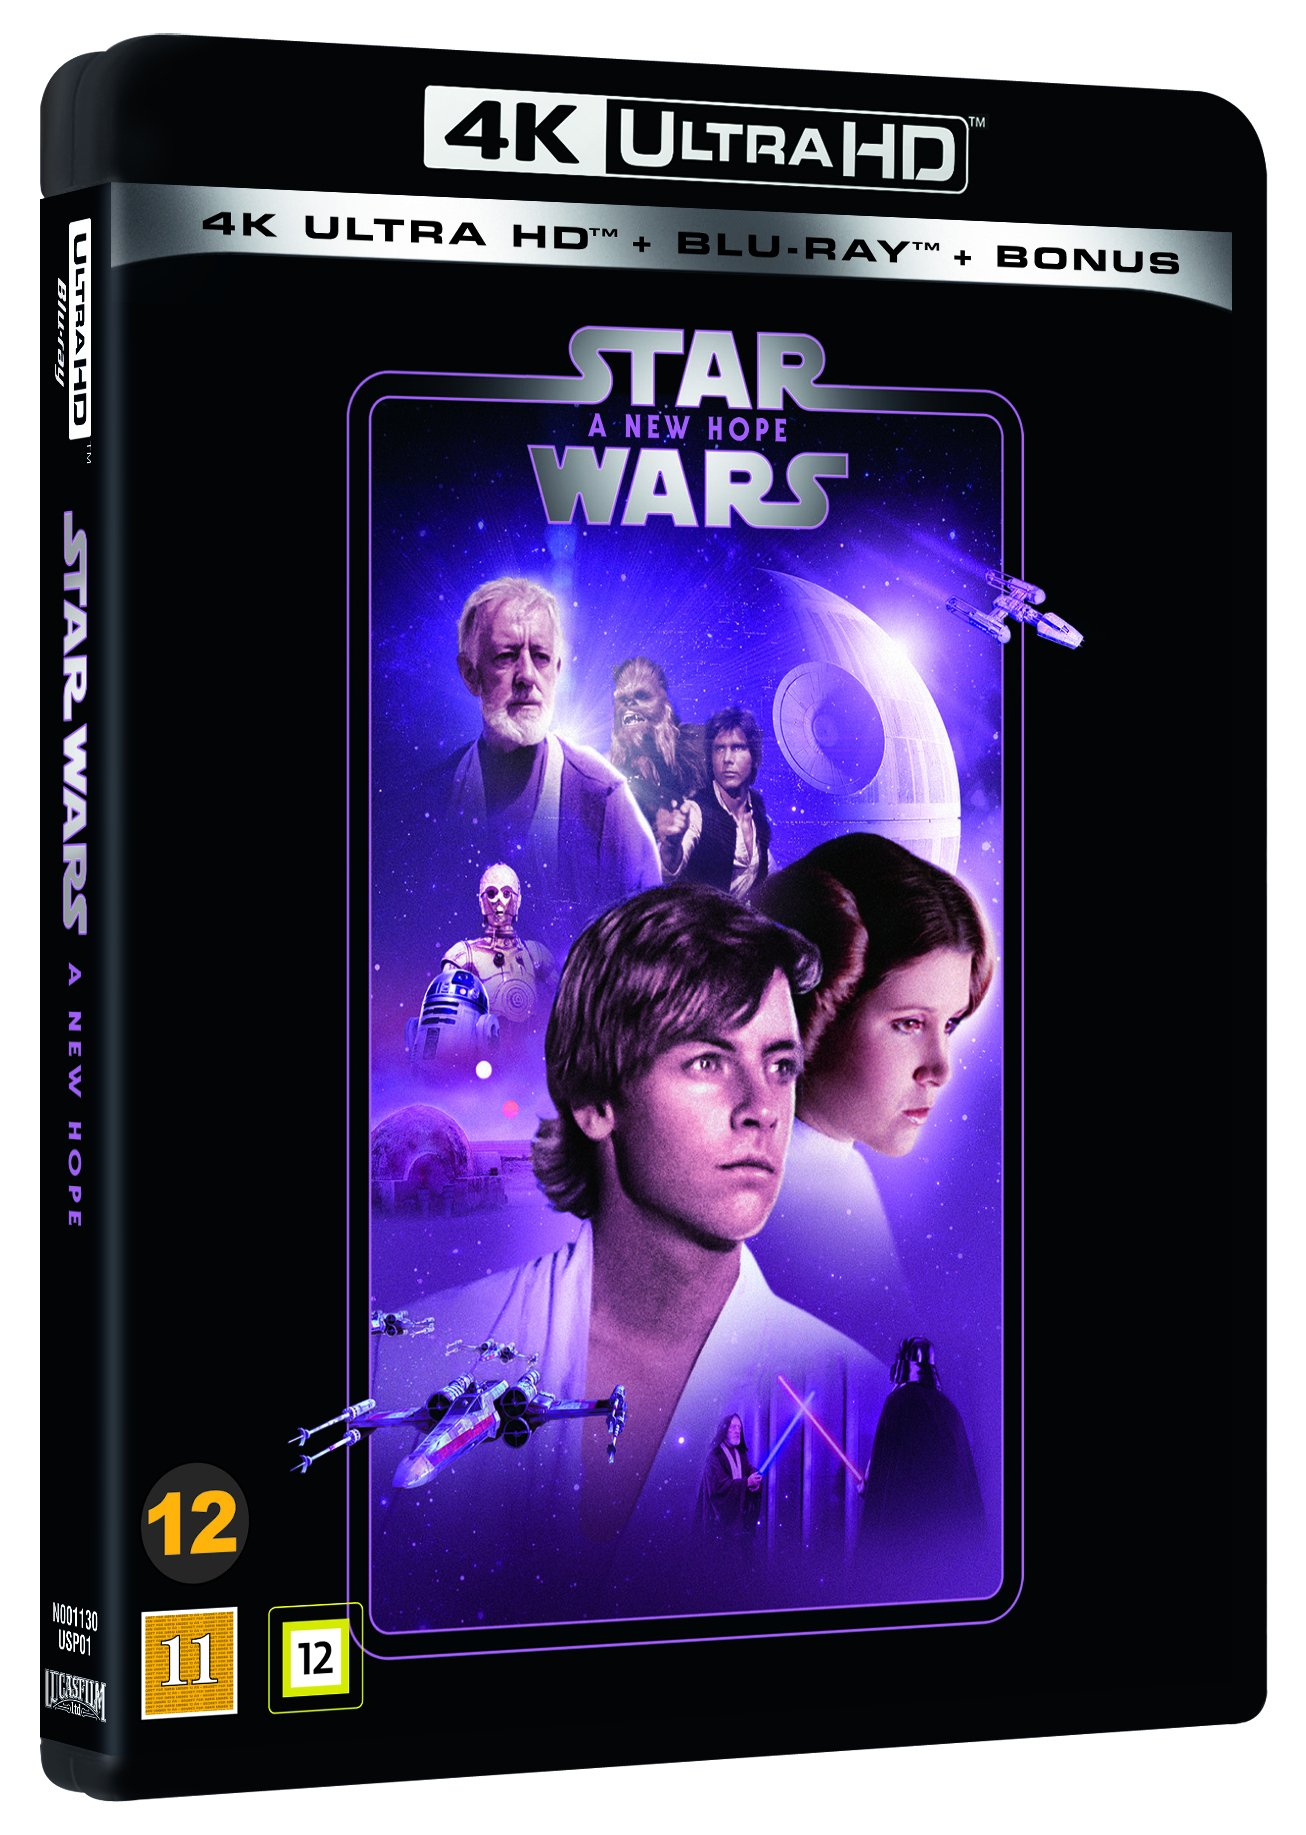 Star Wars: Episode 4 - A NEW HOPE